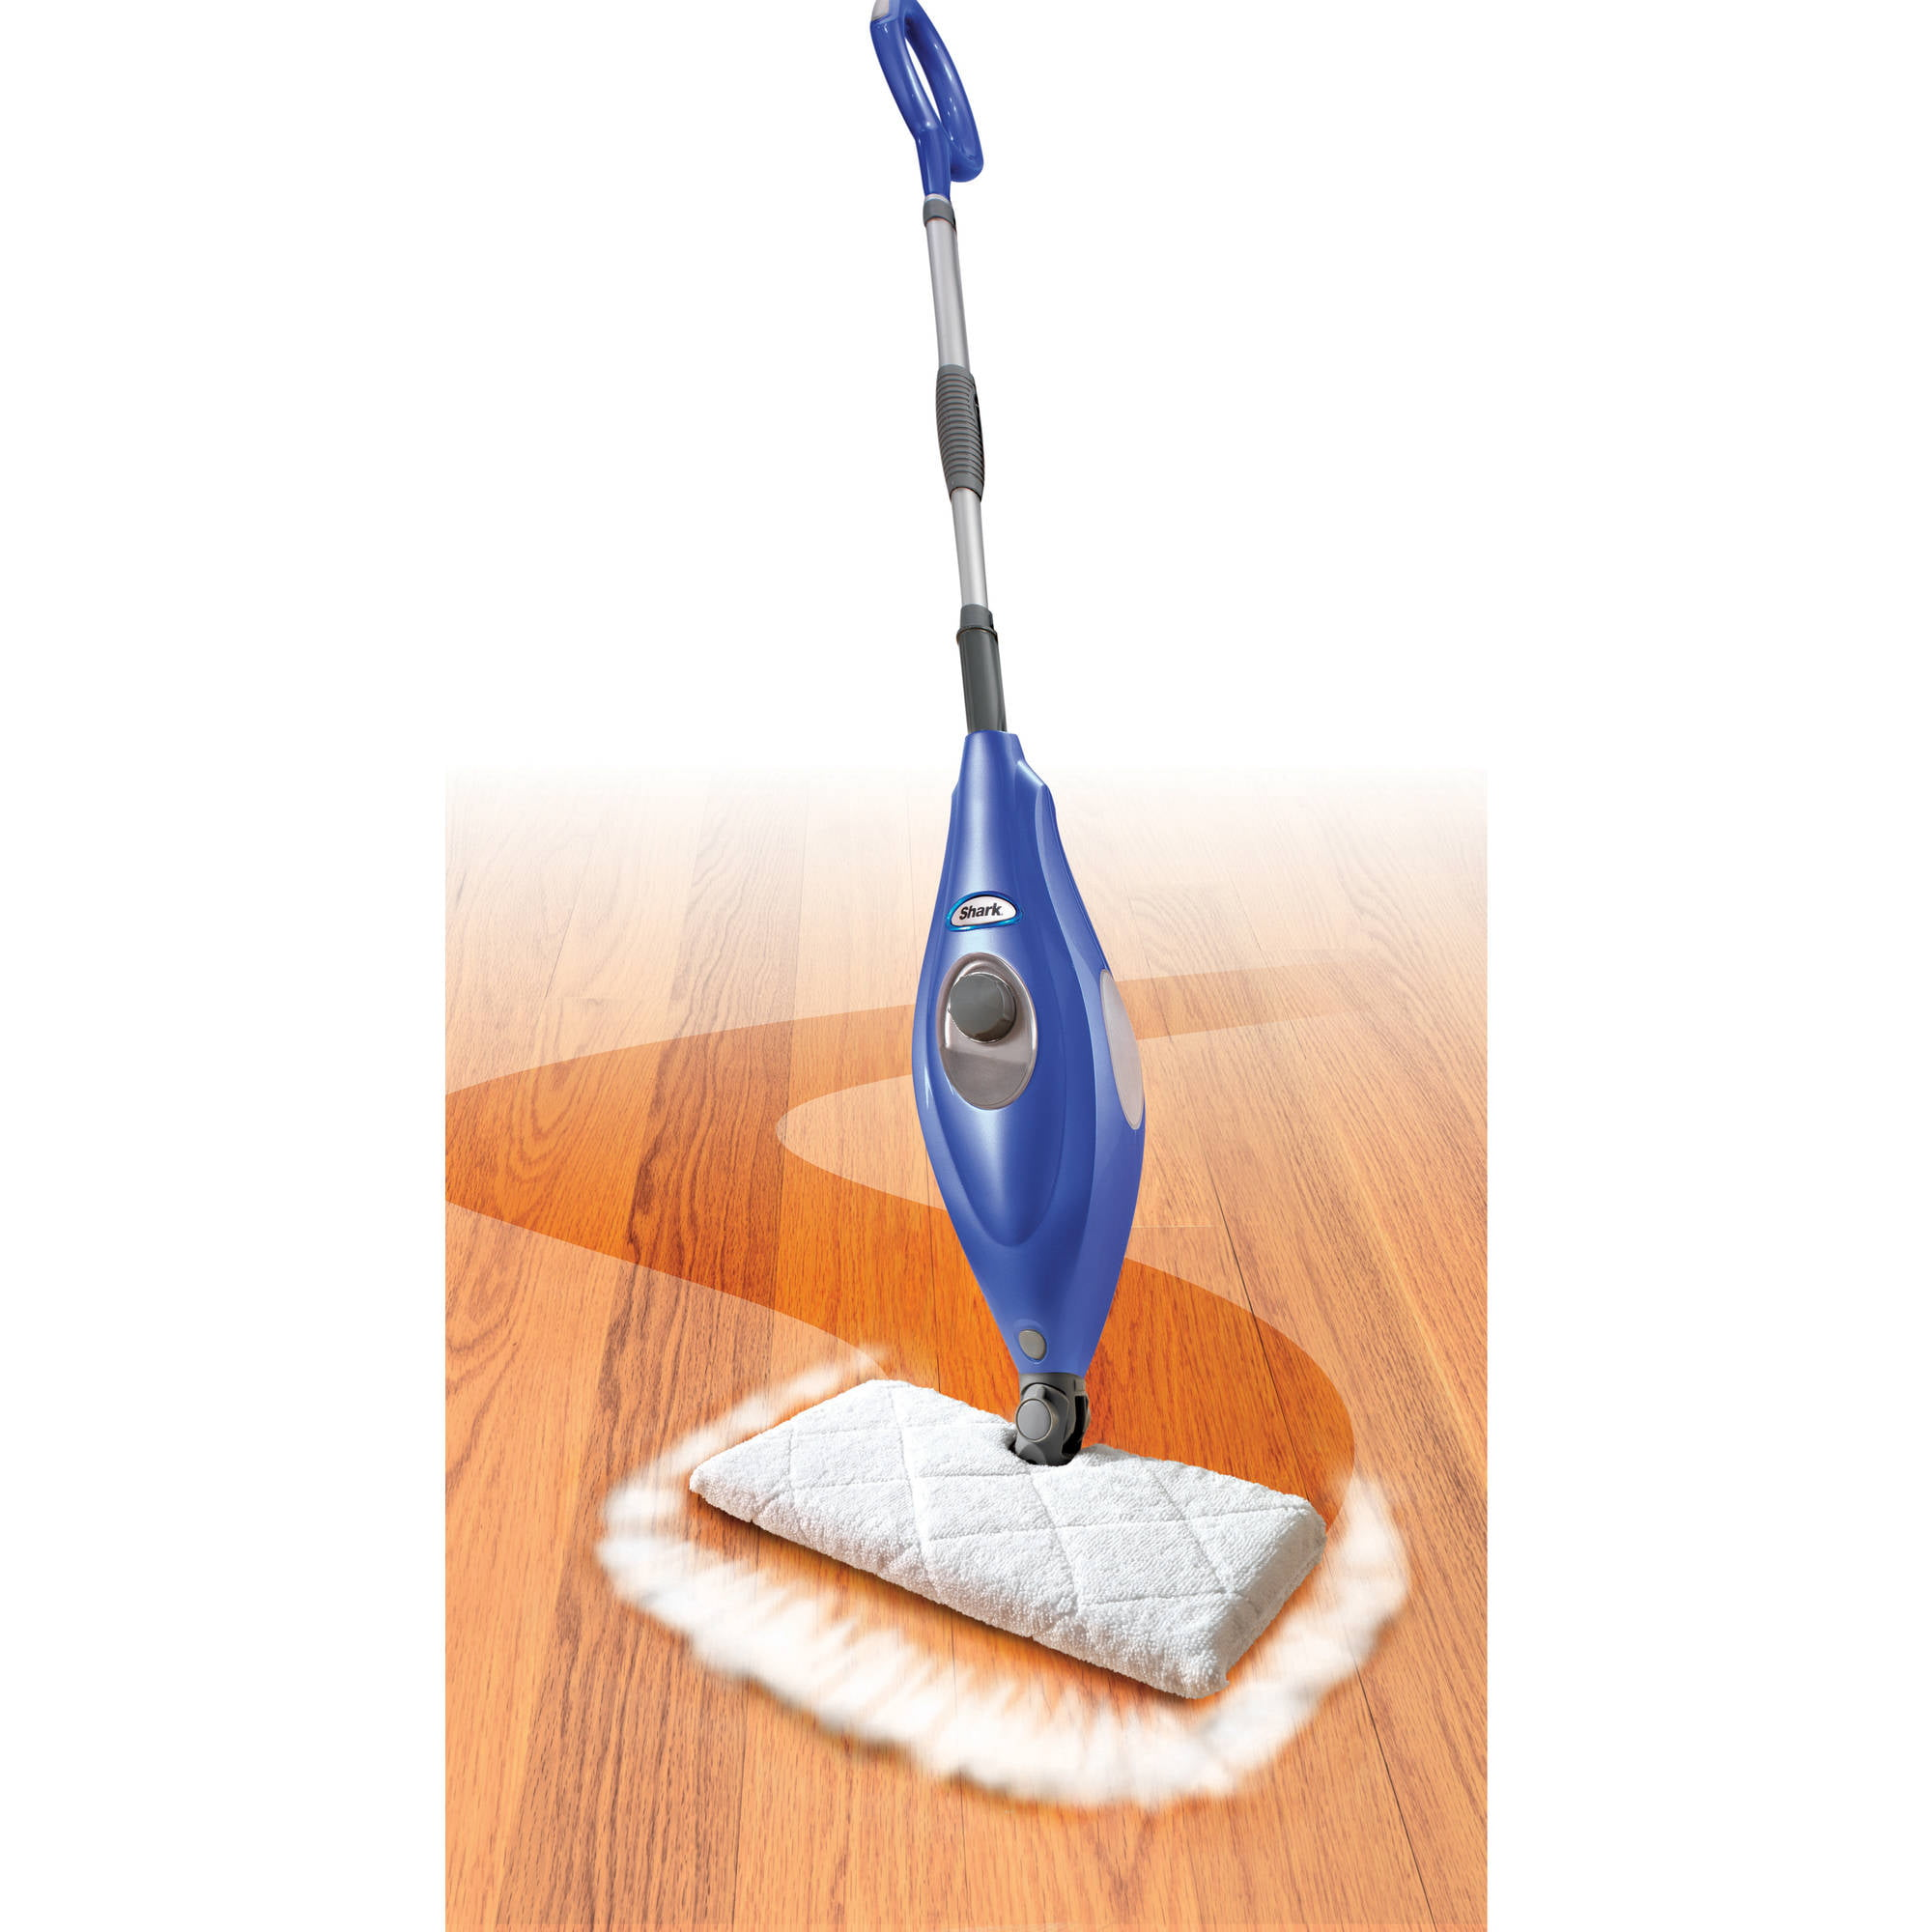 Shark Deluxe Steam Pocket Mop, S3501WM